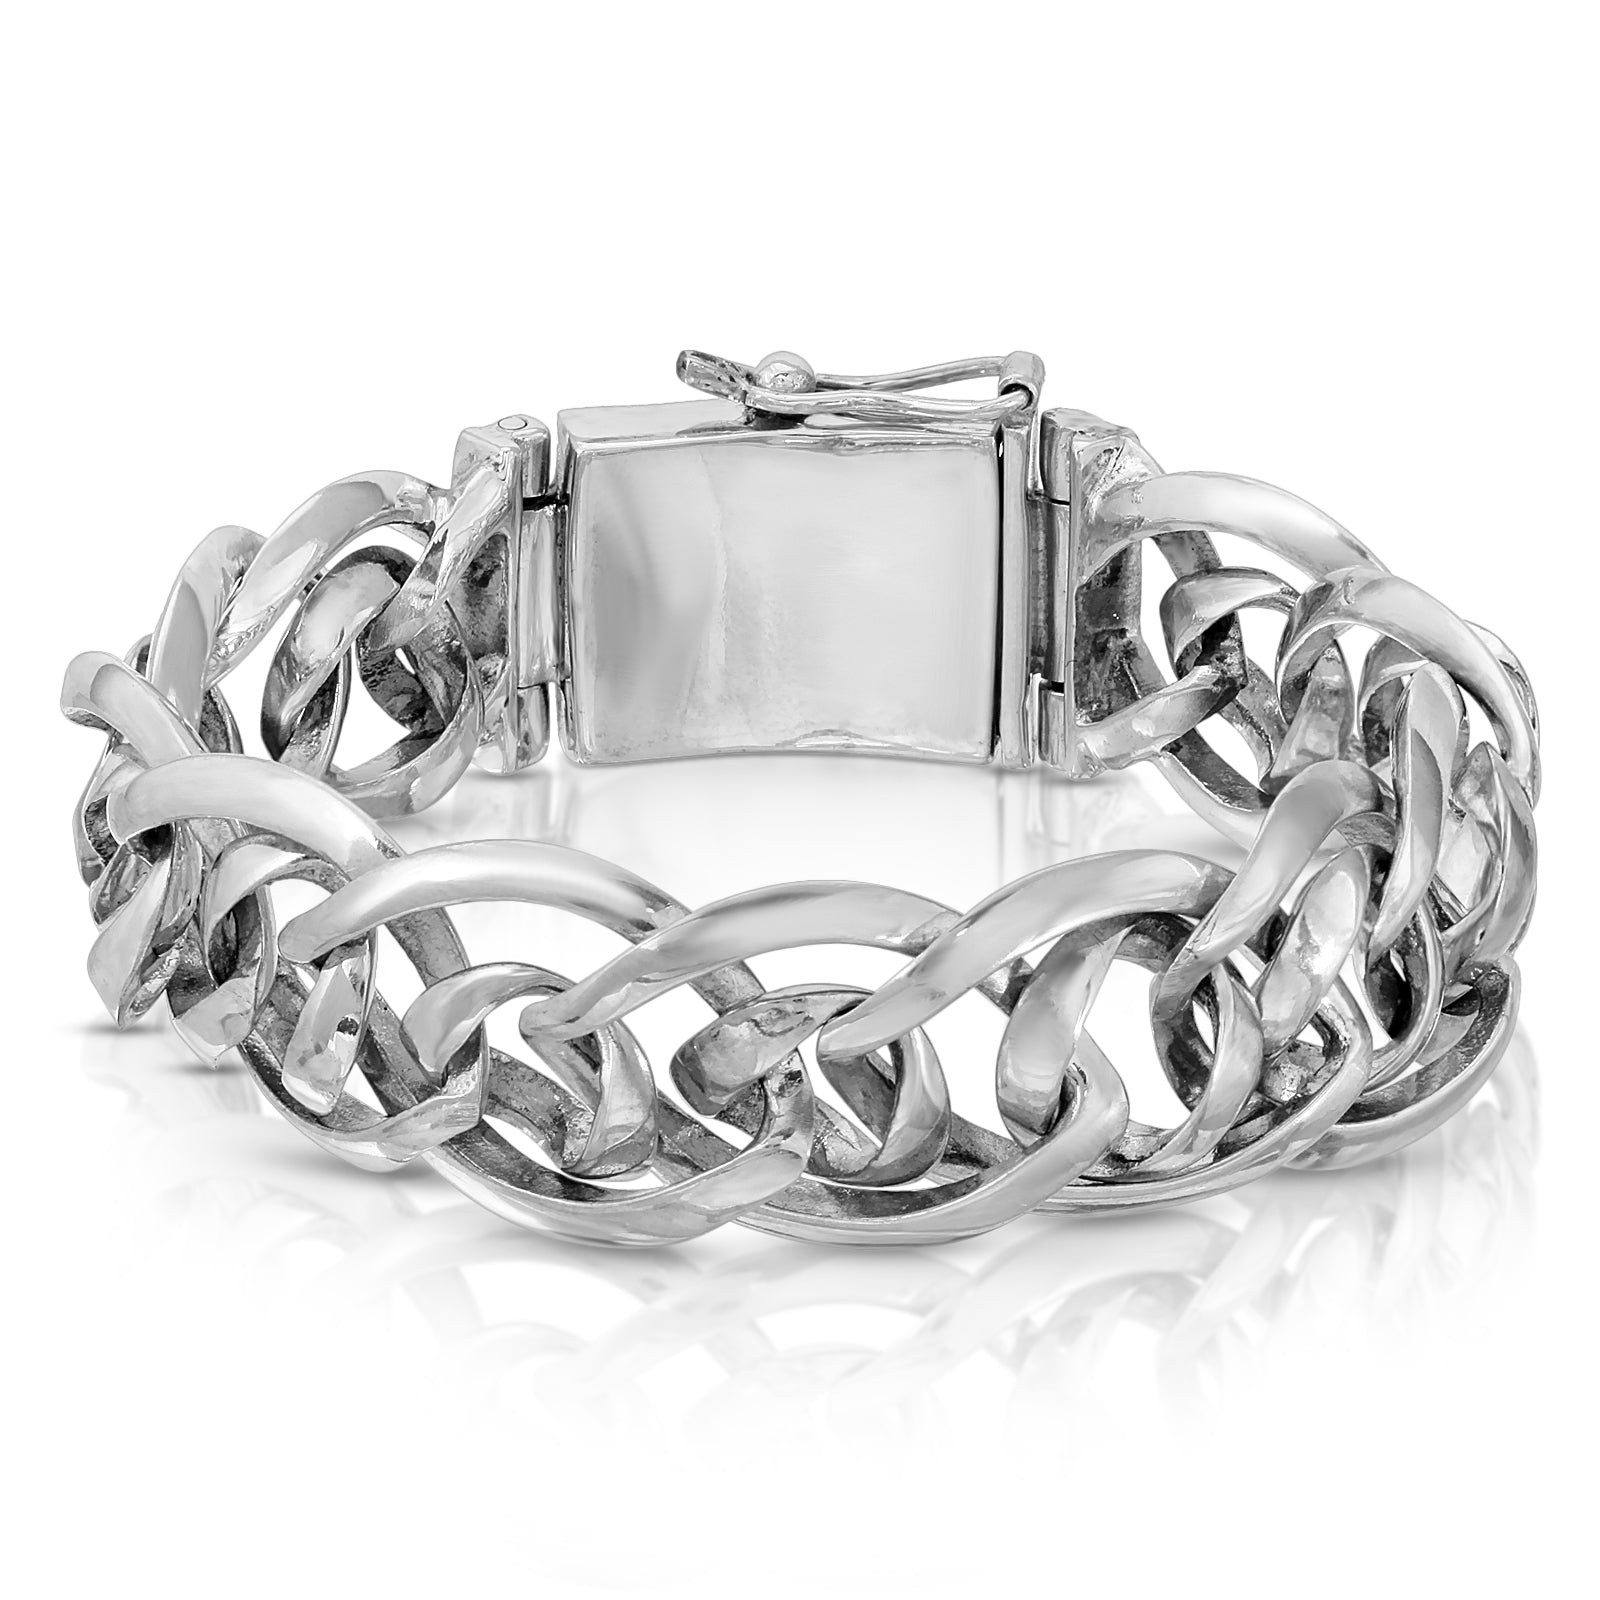 Infinity Curb Chain Silver Bracelet - The W Brothers